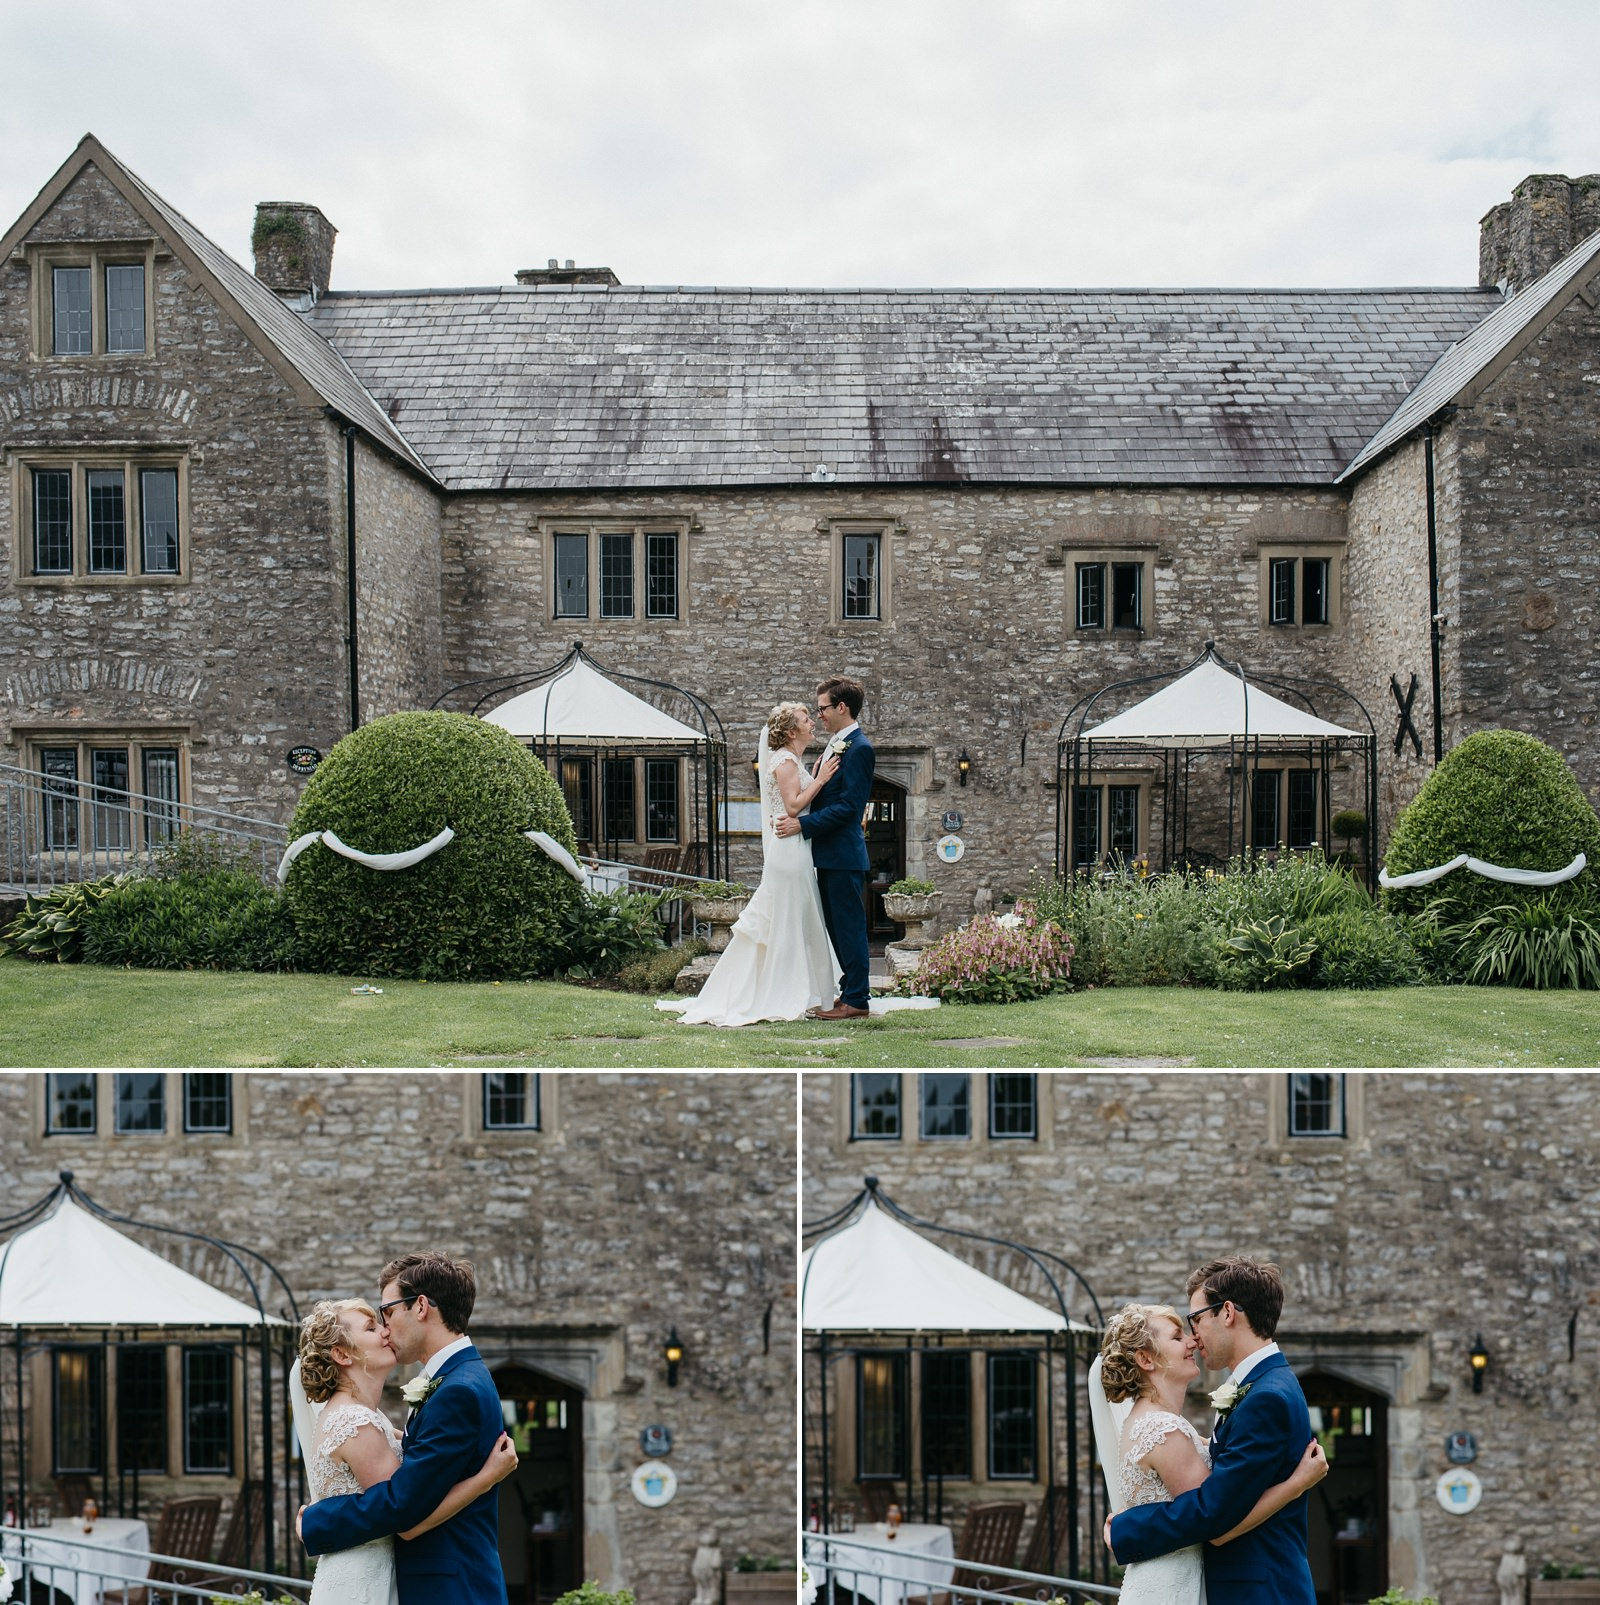 Bride and groom photography in front of The Great House Hotel, Laleston Bridgend